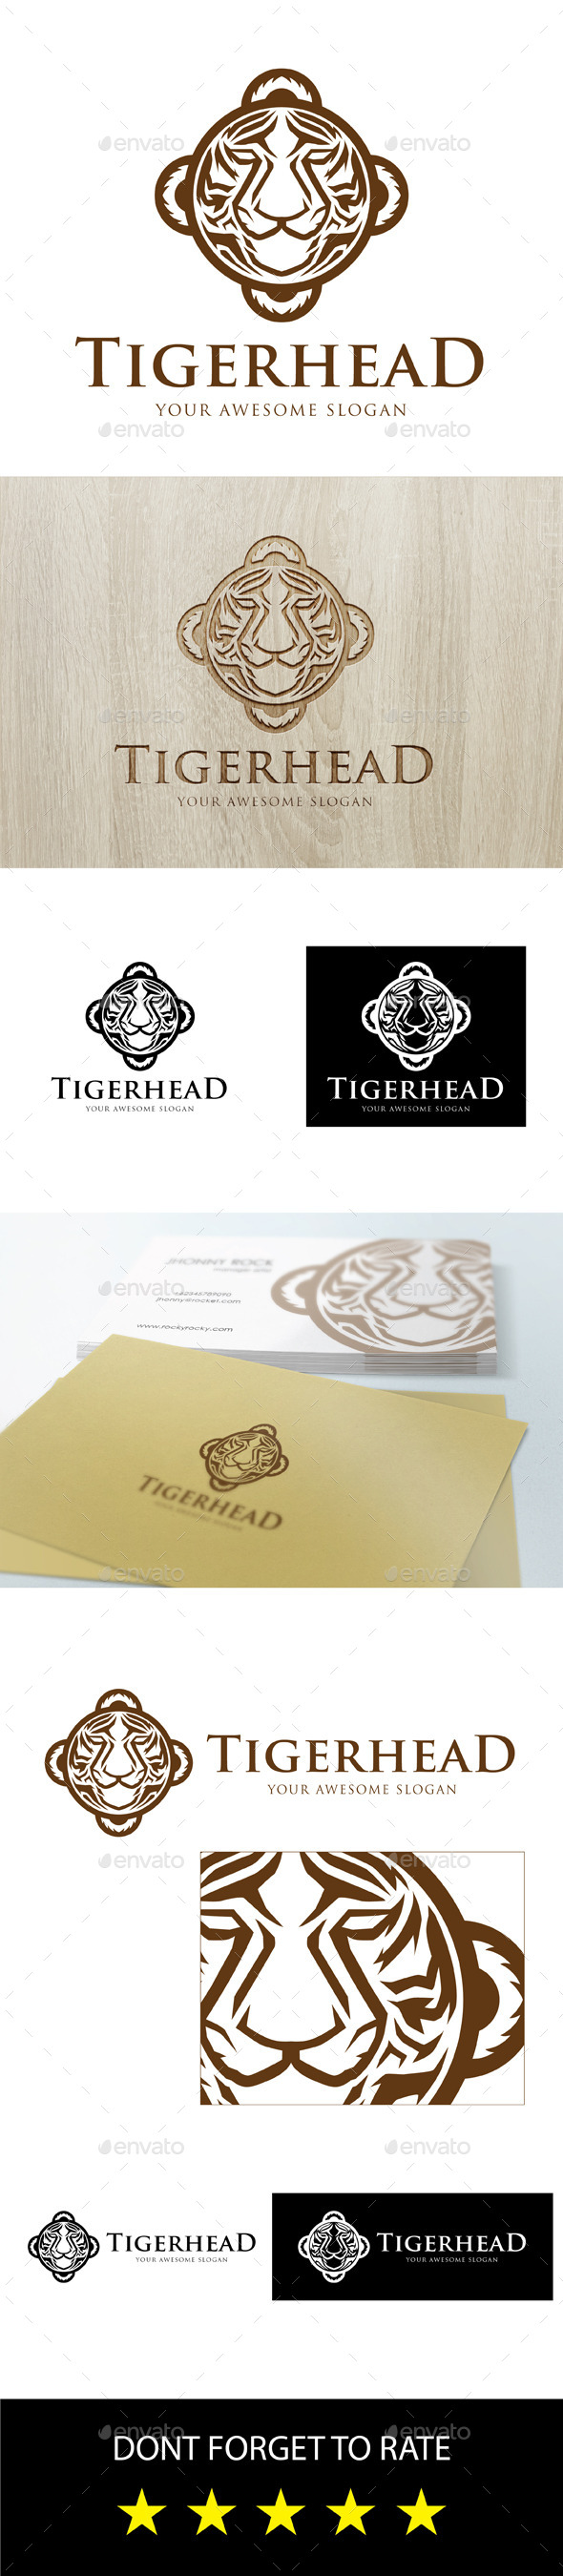 GraphicRiver Tiger Head Logo 9197520